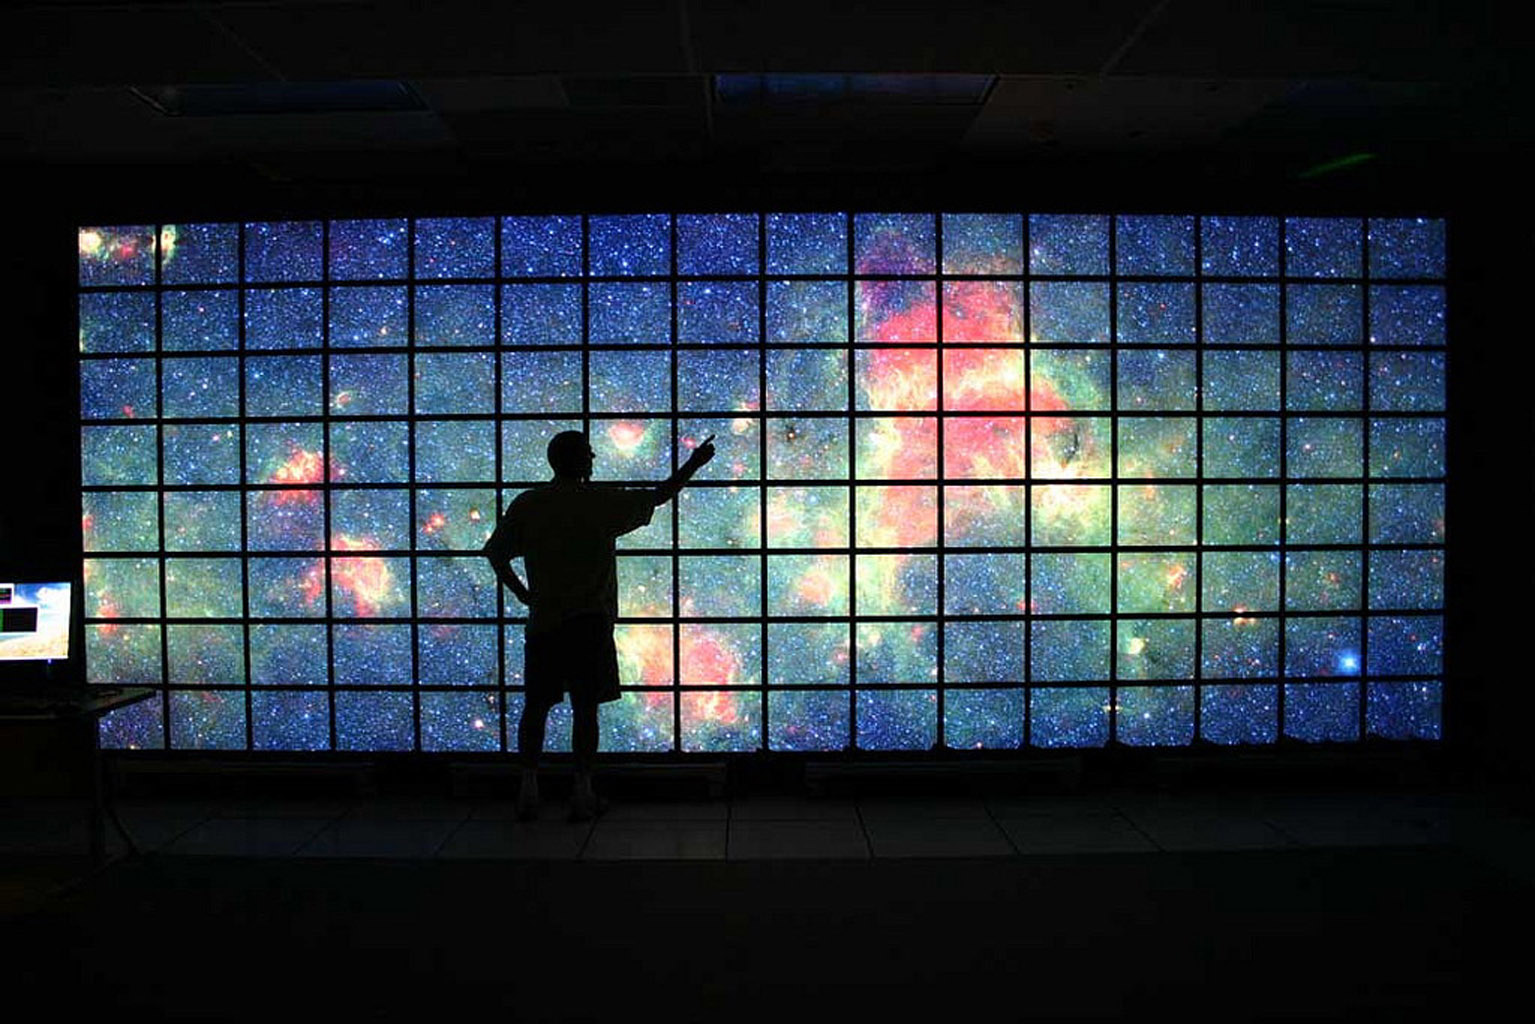 Space images big data on the big screen for Big wallpaper for wall